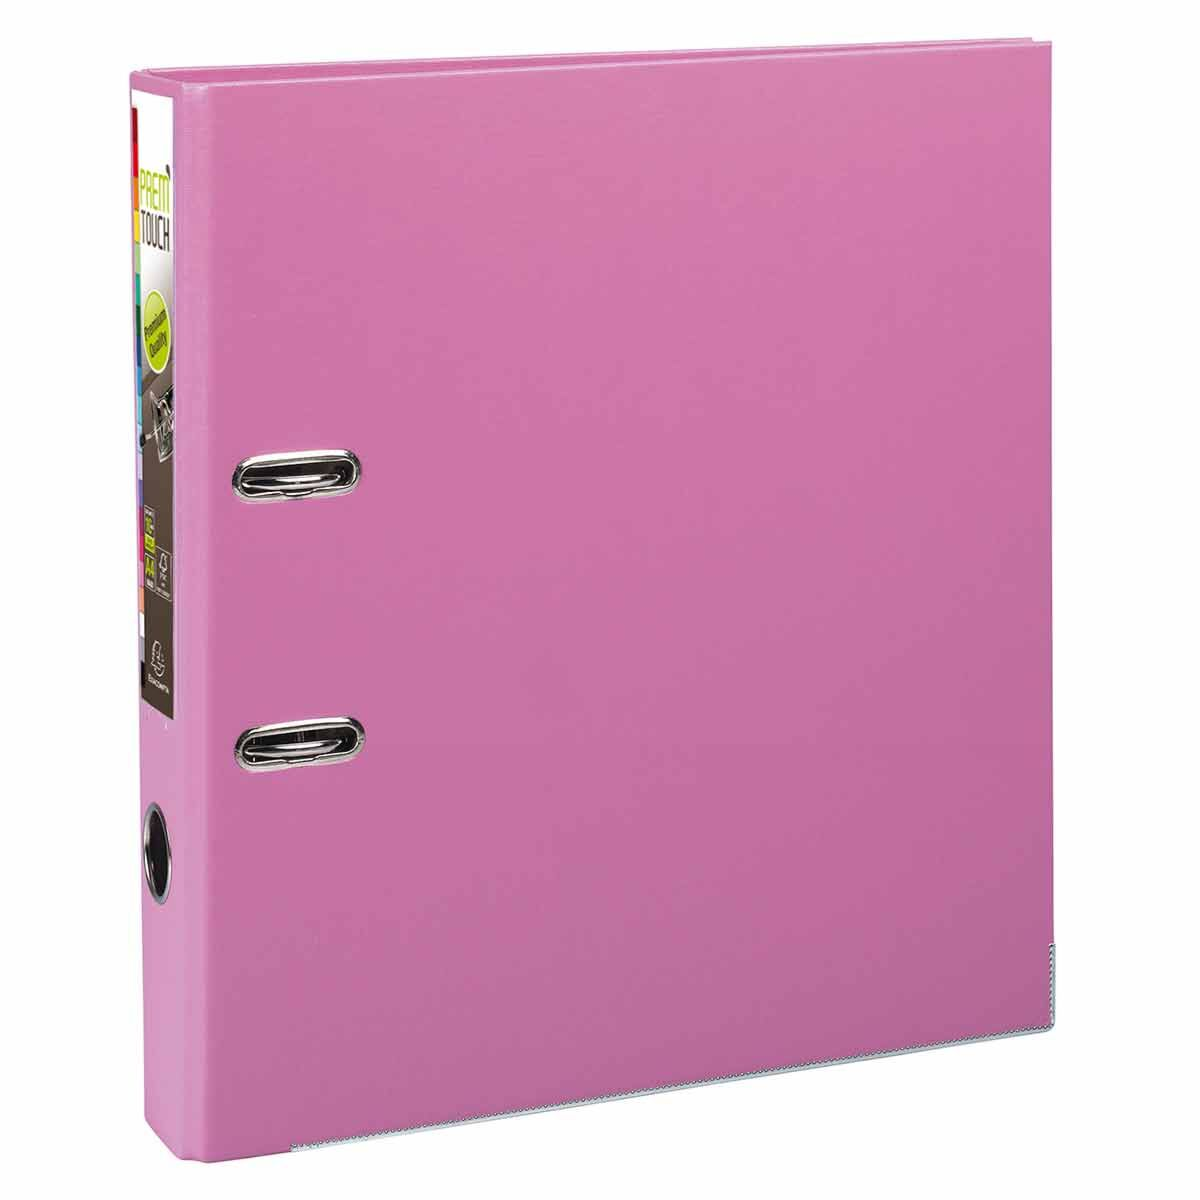 Exacompta PremTouch Lever Arch File A4 Plus PP 50mm Pack of 10 Pink